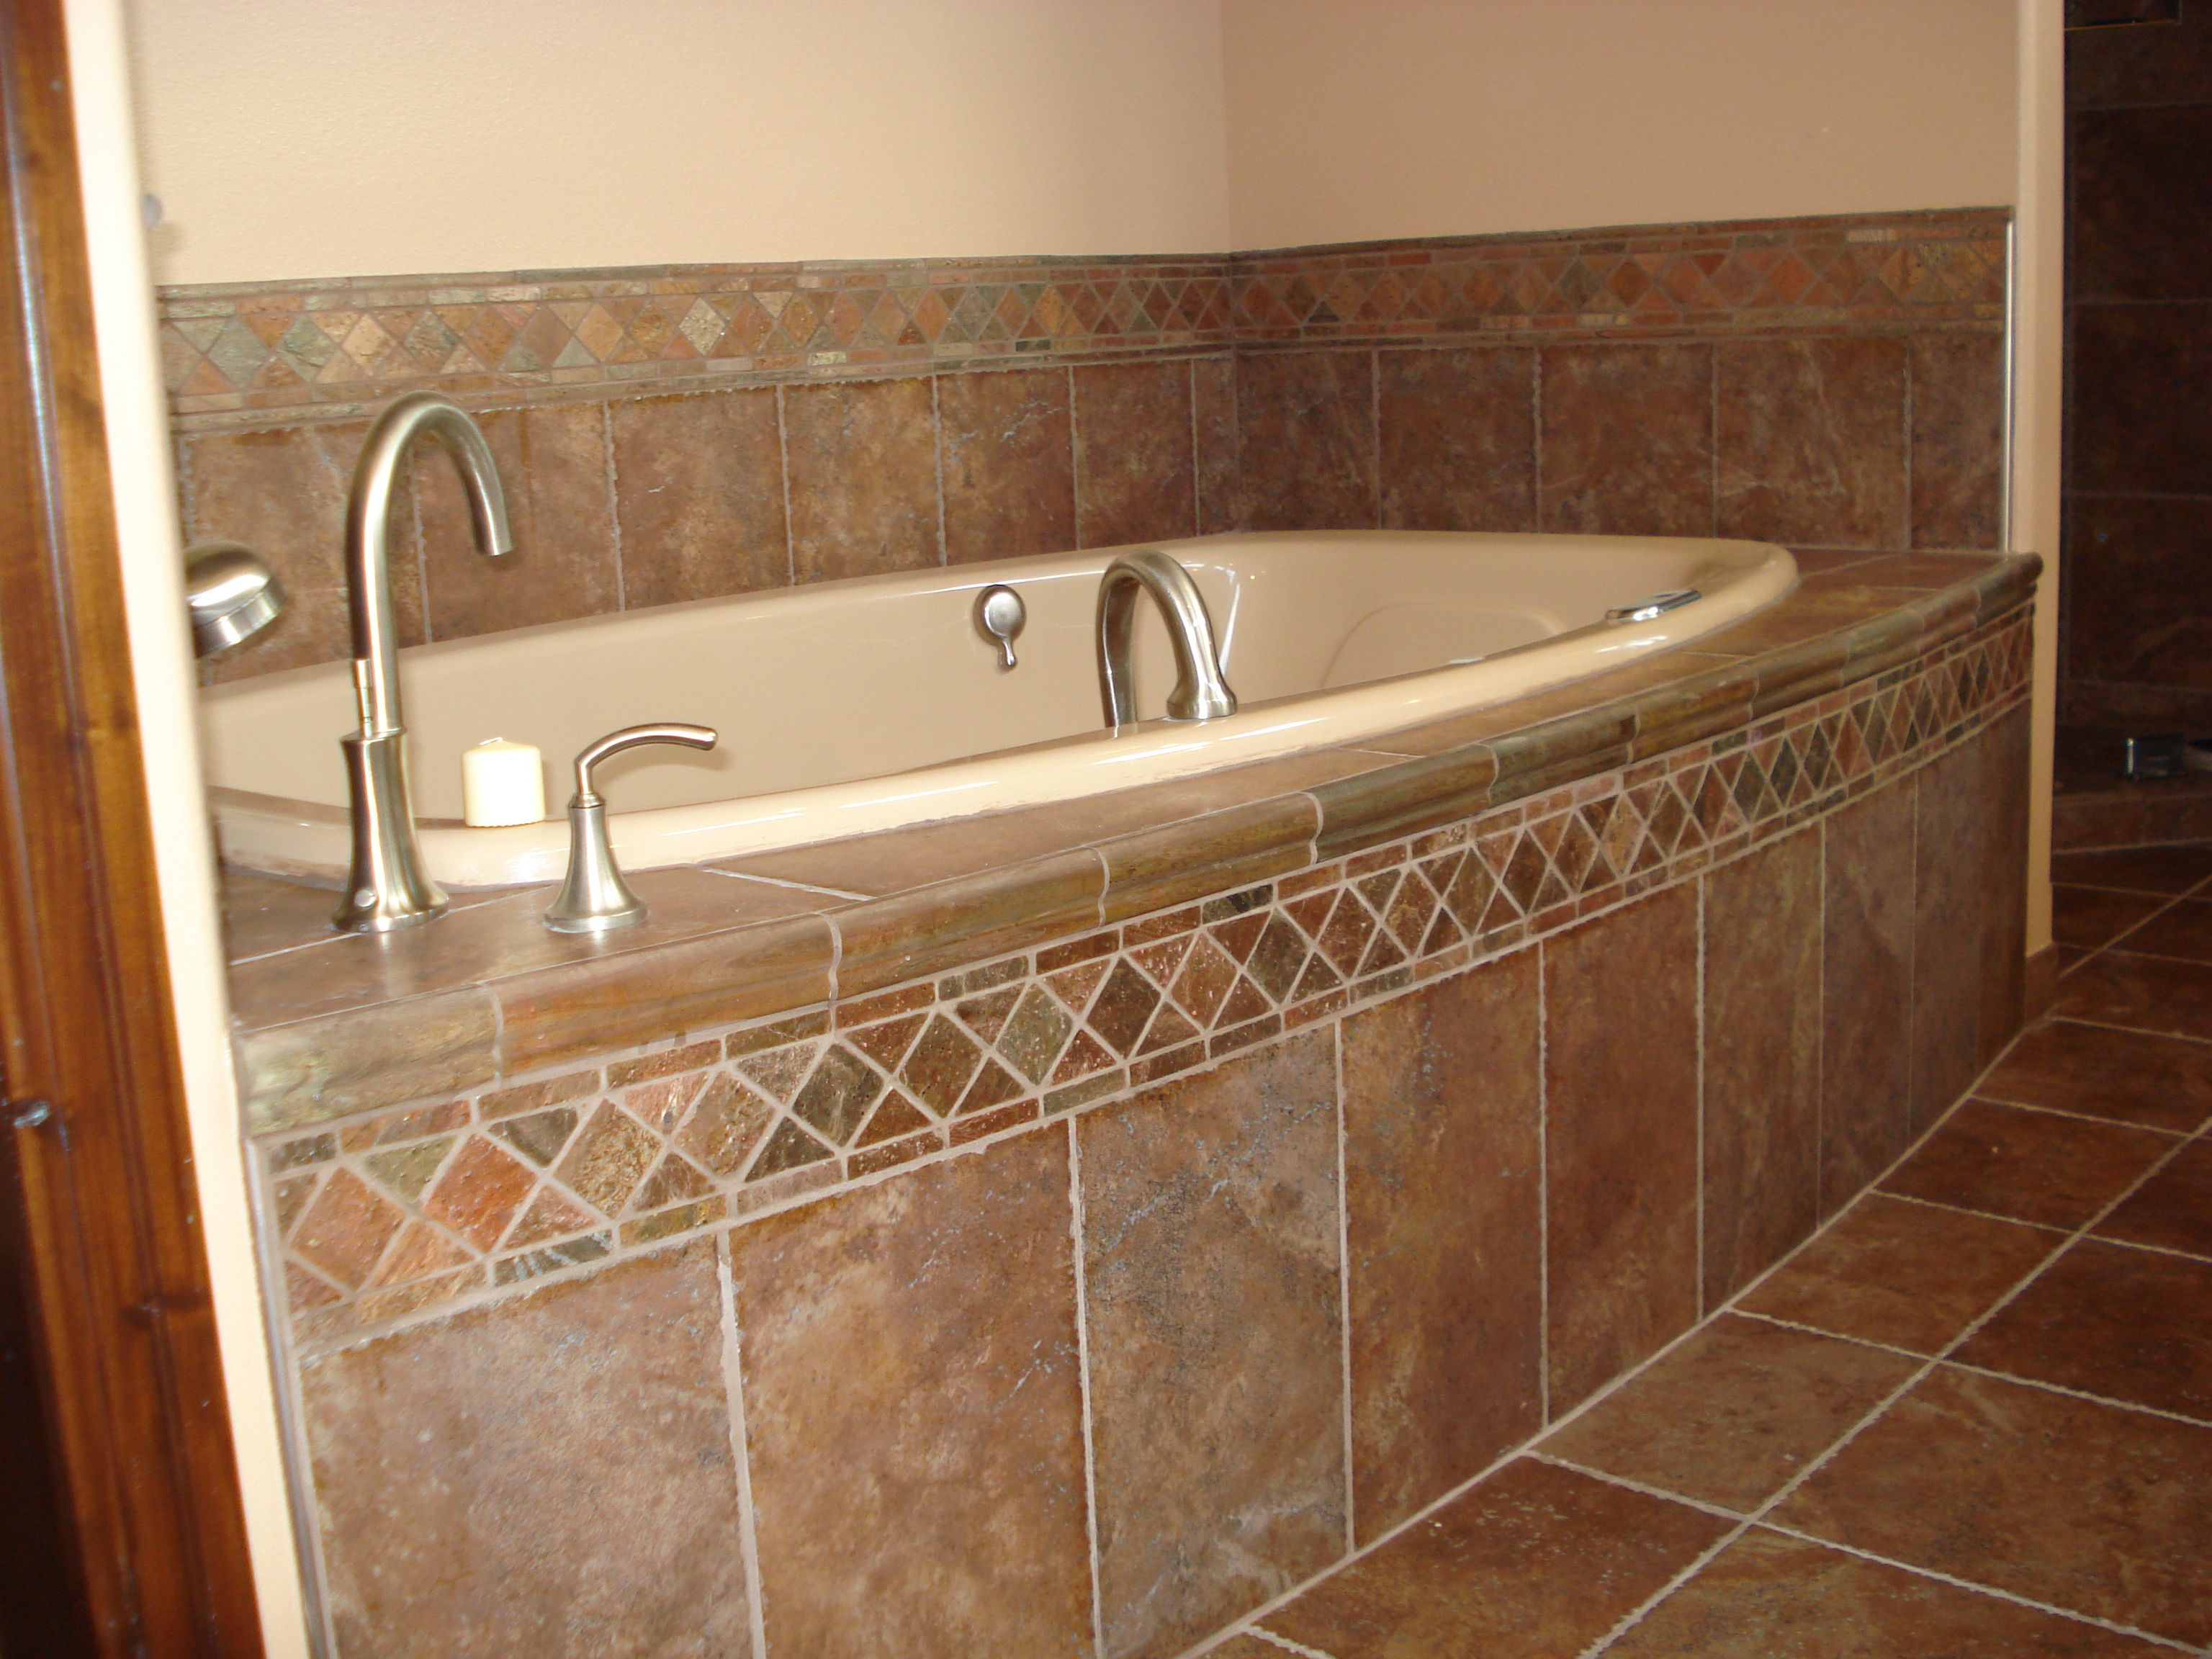 tile around bathtub ideas | Browse our photo gallery for ideas ...